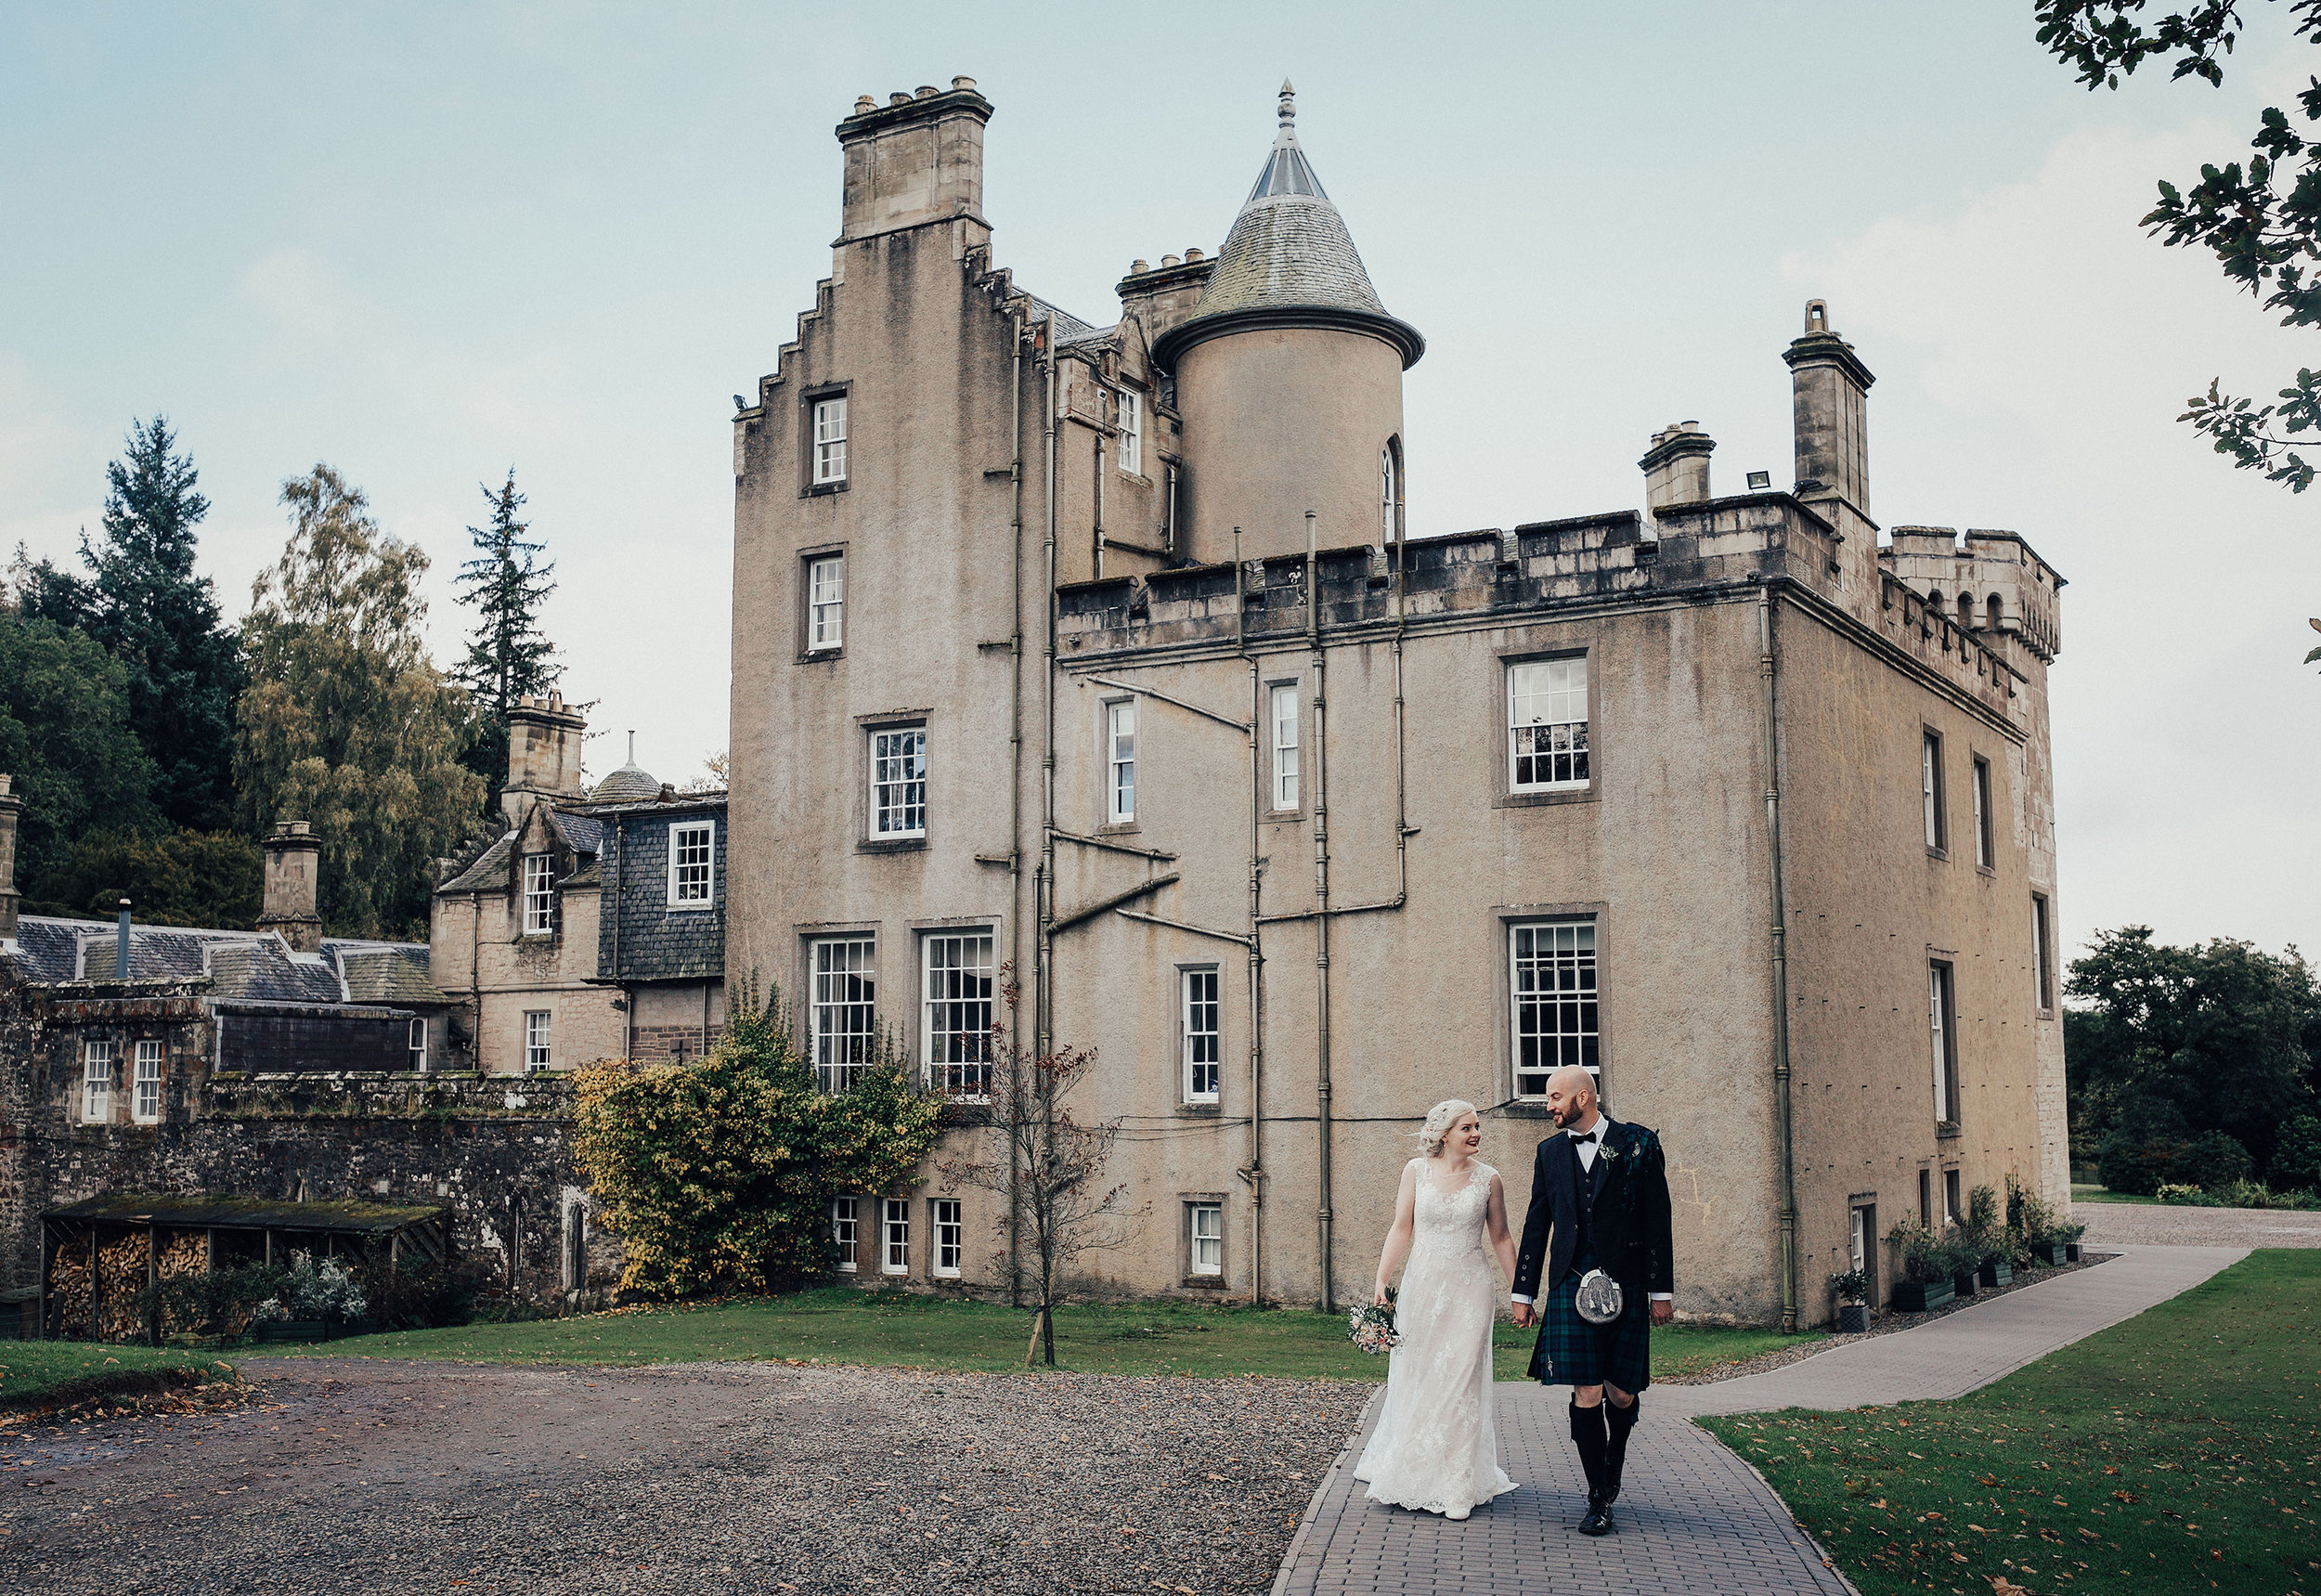 BOTURICH_CASTLE_WEDDING_PHOTOGRAPHER_PJ_PHILLIPS_PHOTOGRAPHY_106.jpg